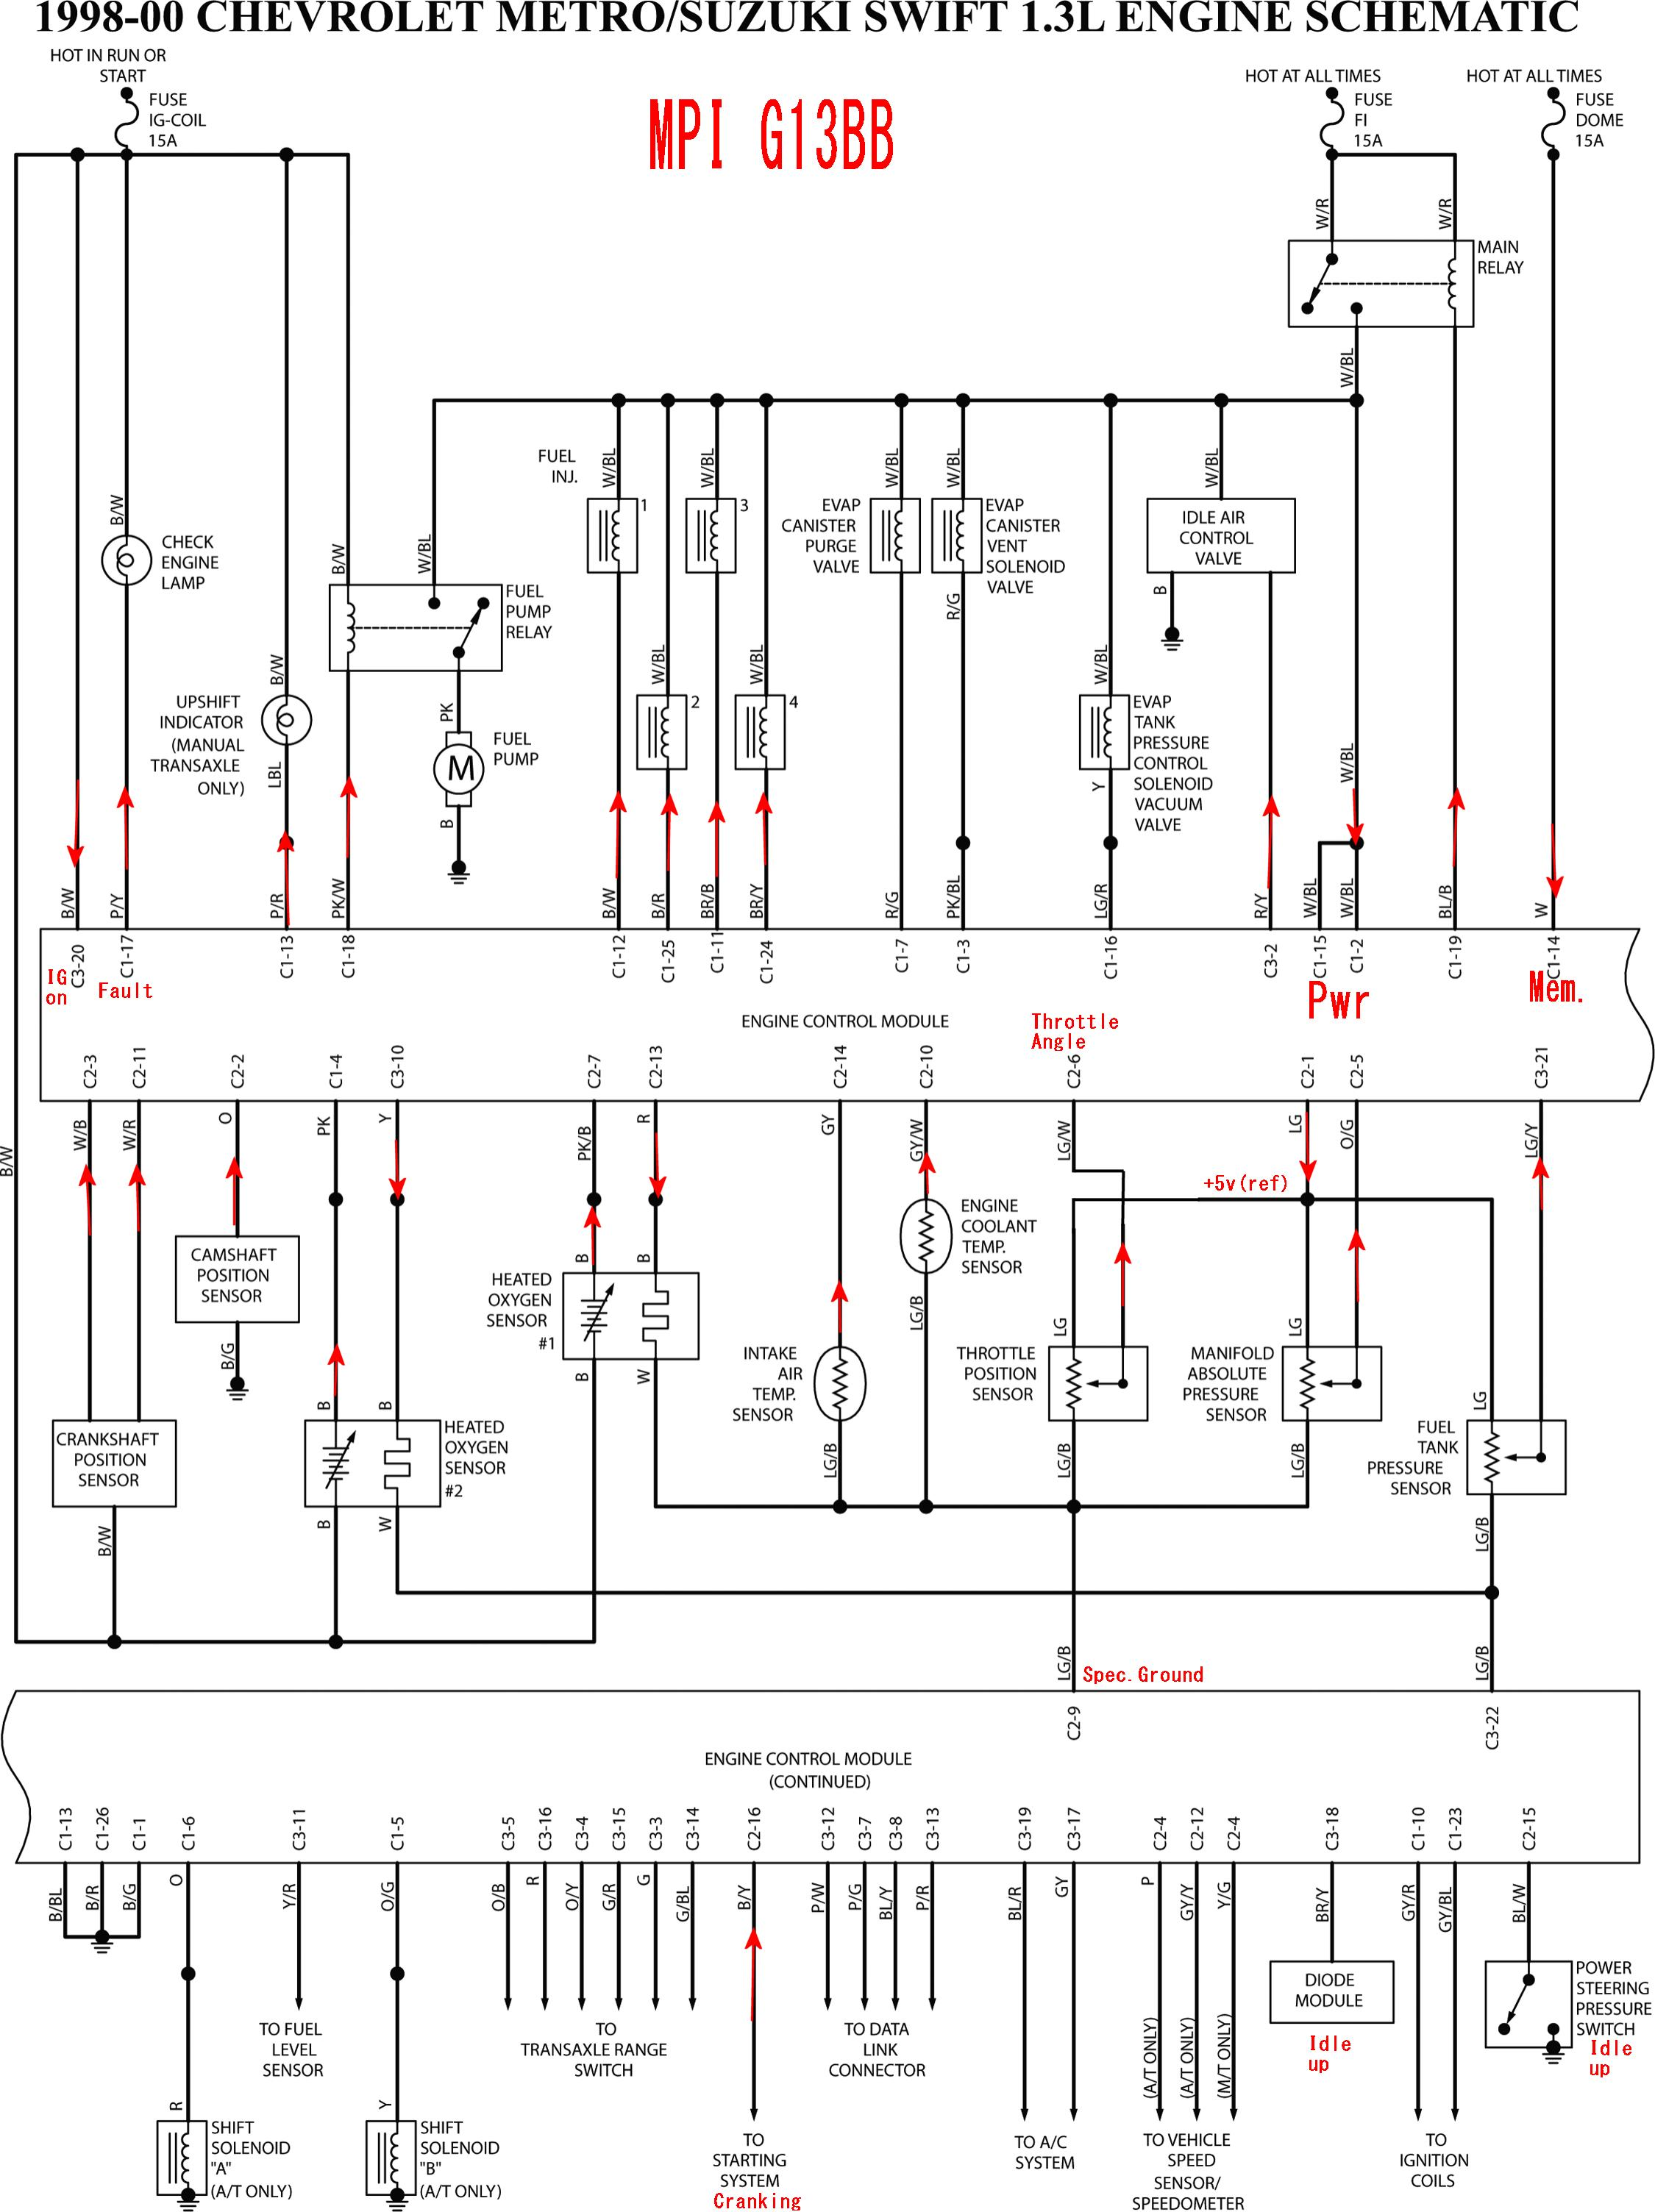 98 00G13metroMPI_001 suzuki swift or geo metro suzuki swift wiring diagram at alyssarenee.co